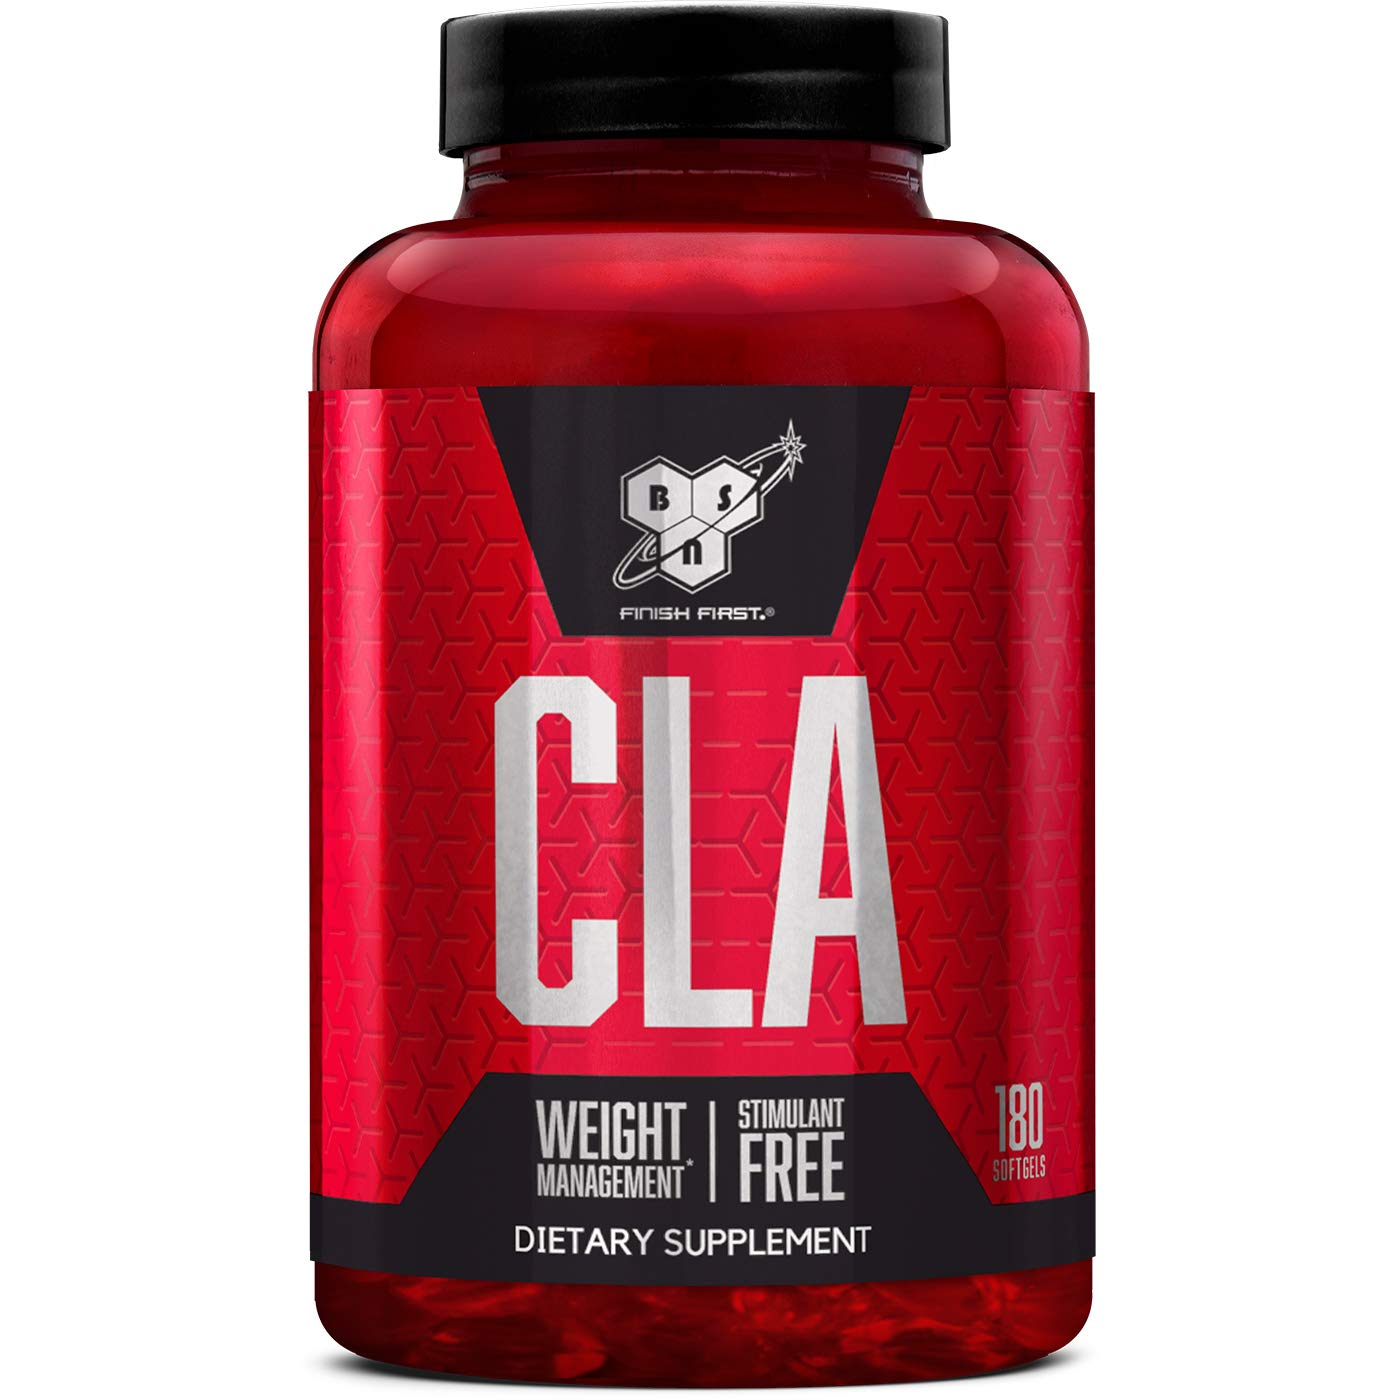 BSN CLA DNA - 180 softgels